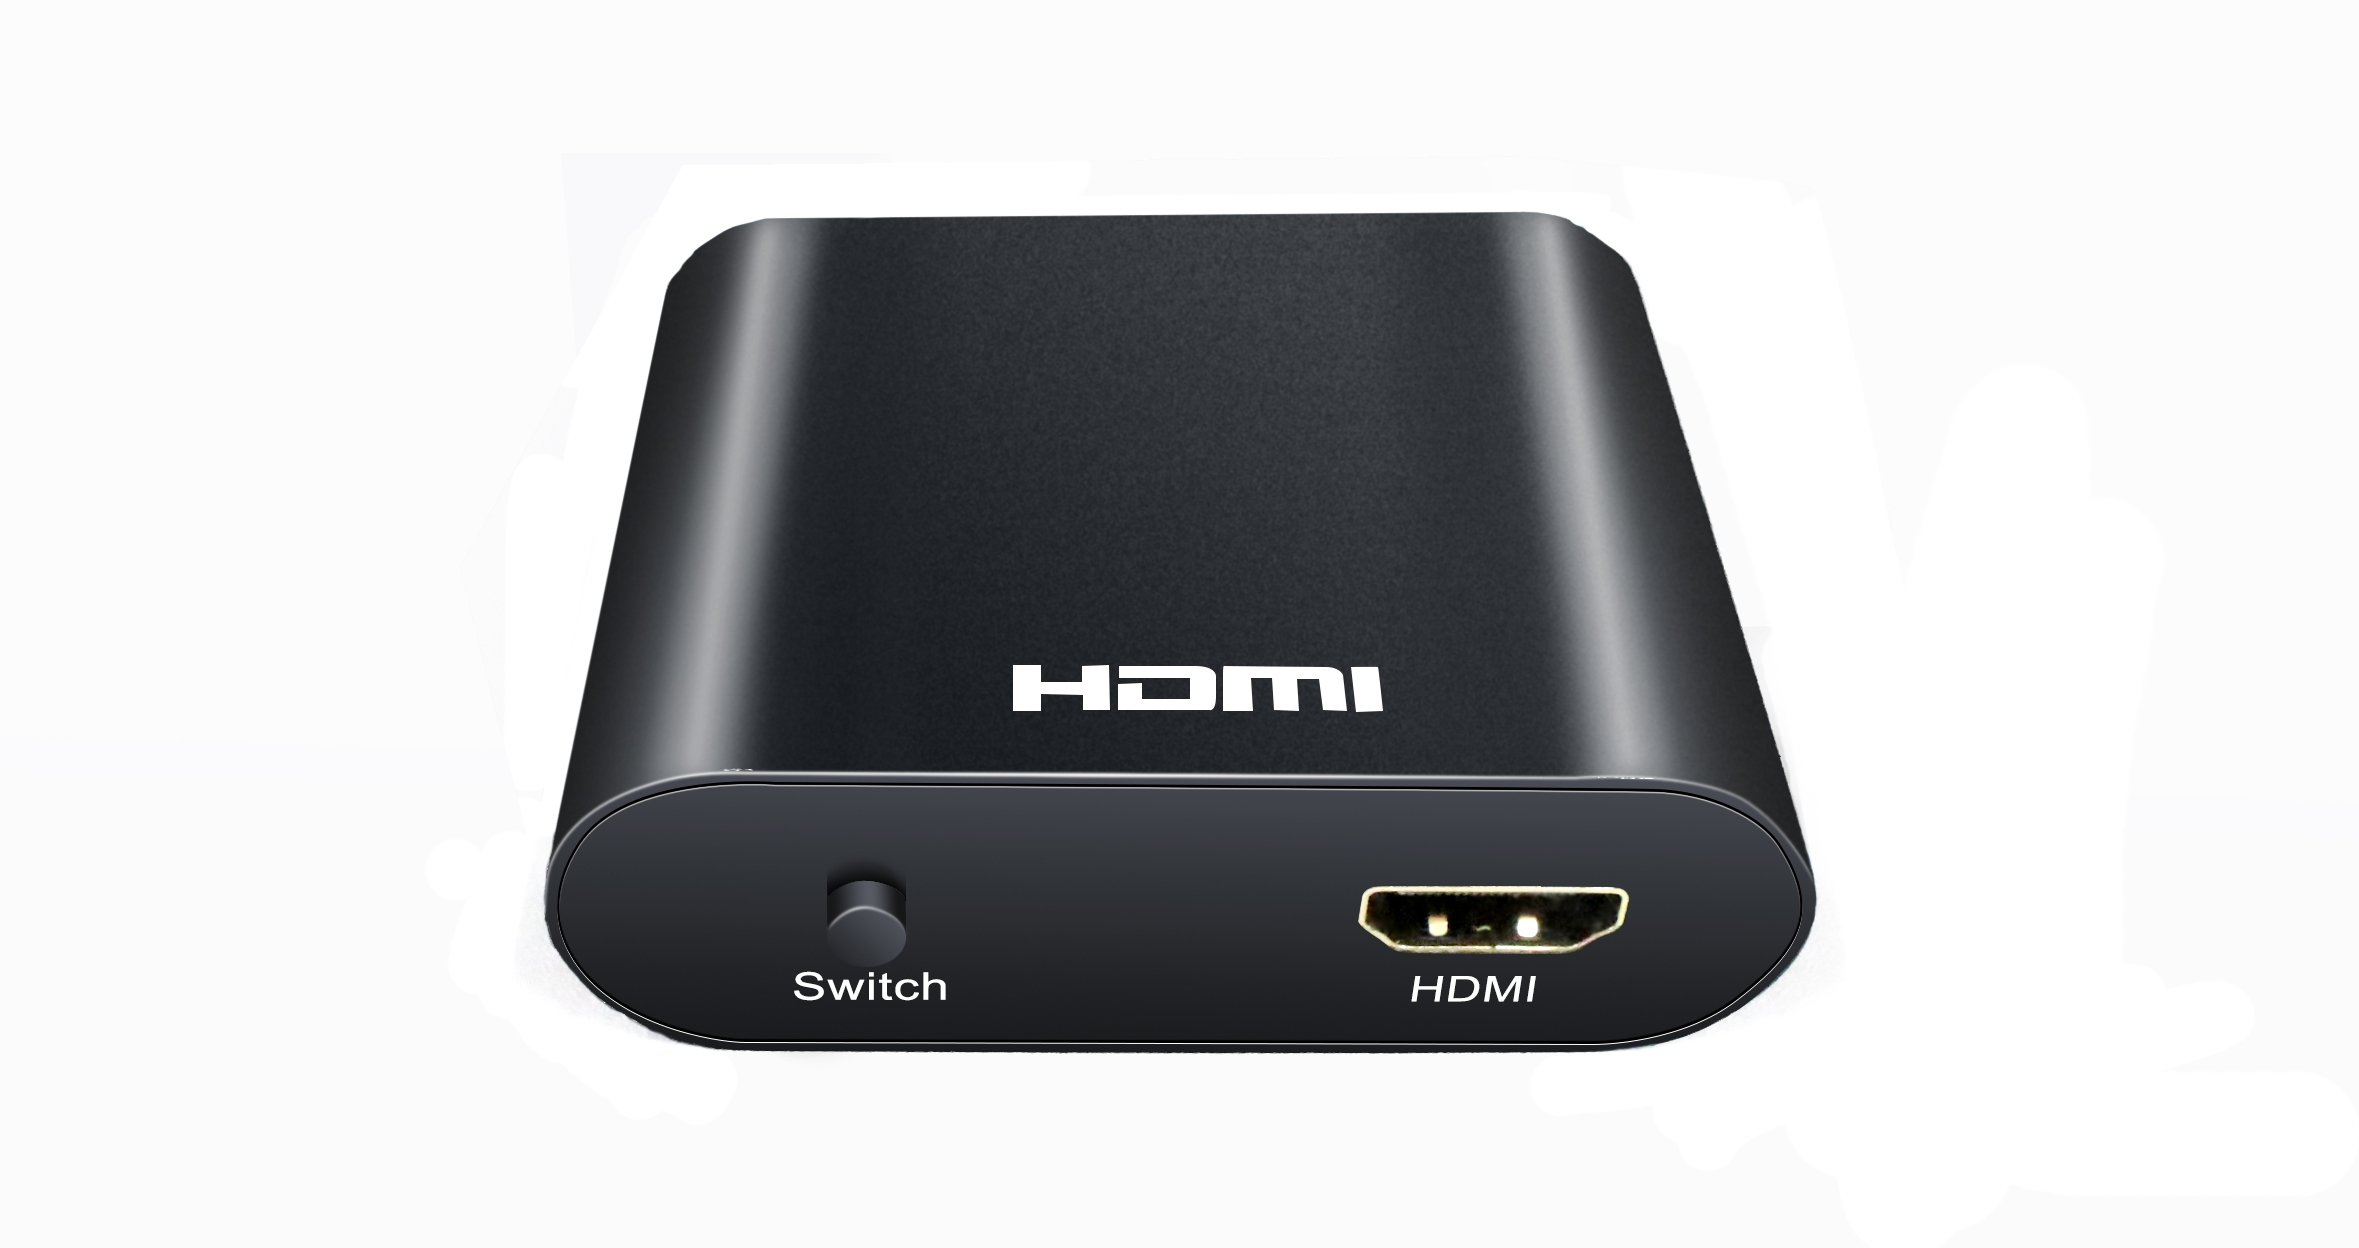 2x1 Switch 4K@60hz YUV420 Support HDCP2.2, HDR10